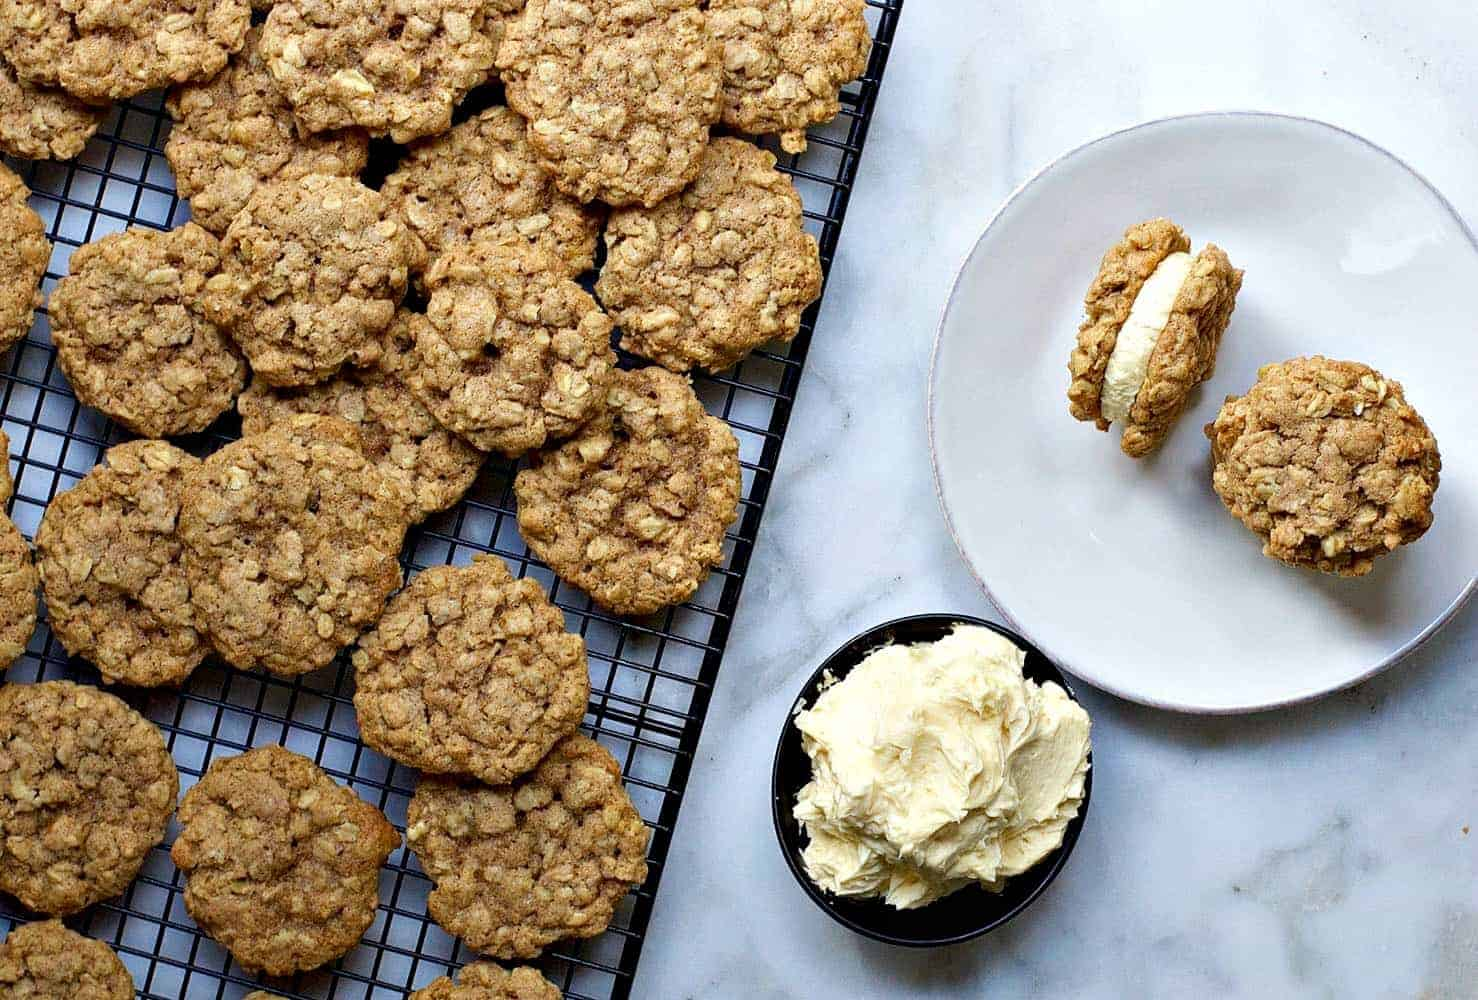 Oatmeal Sandwich Cookie Assembly